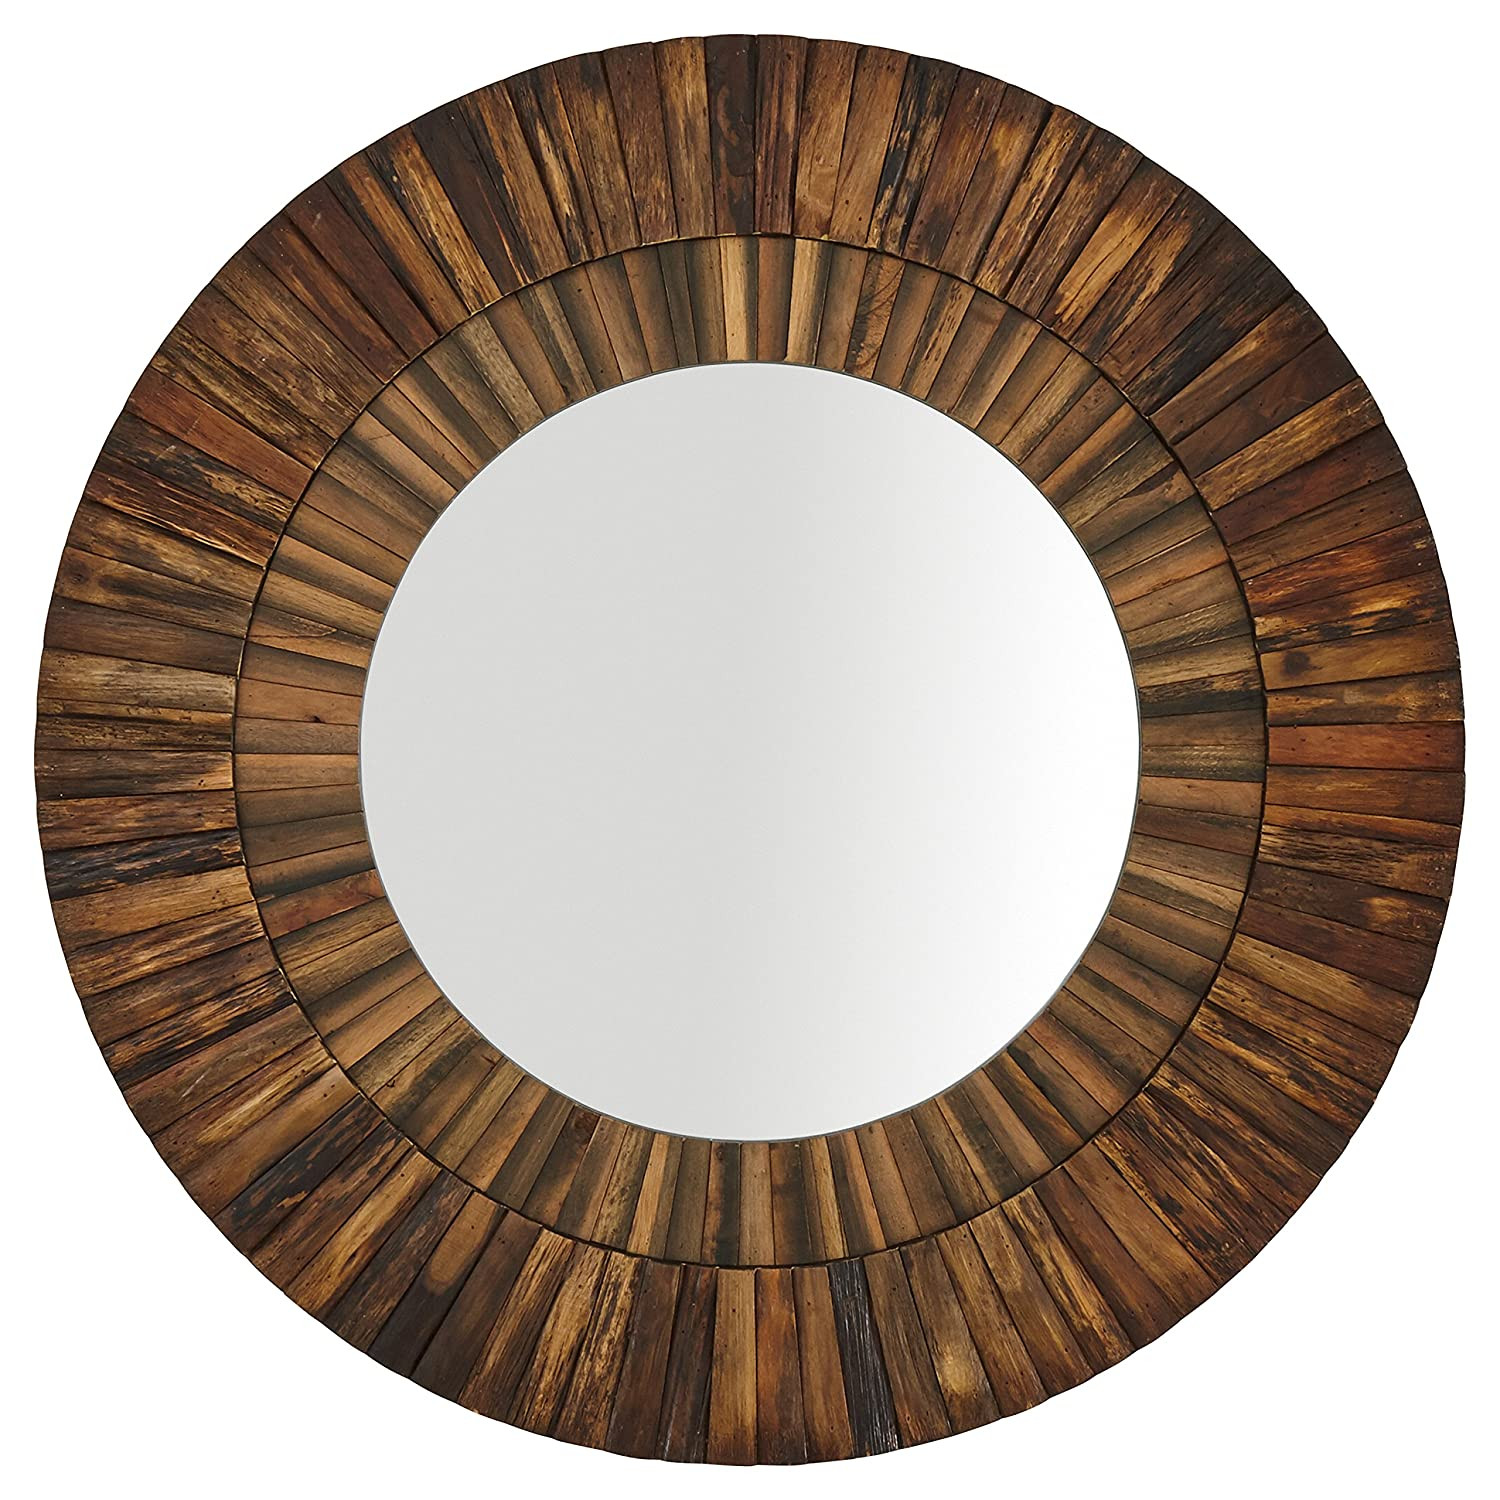 "Stone & Beam Round Layered Wood Mirror, 42""H, Dark Wood Finish"